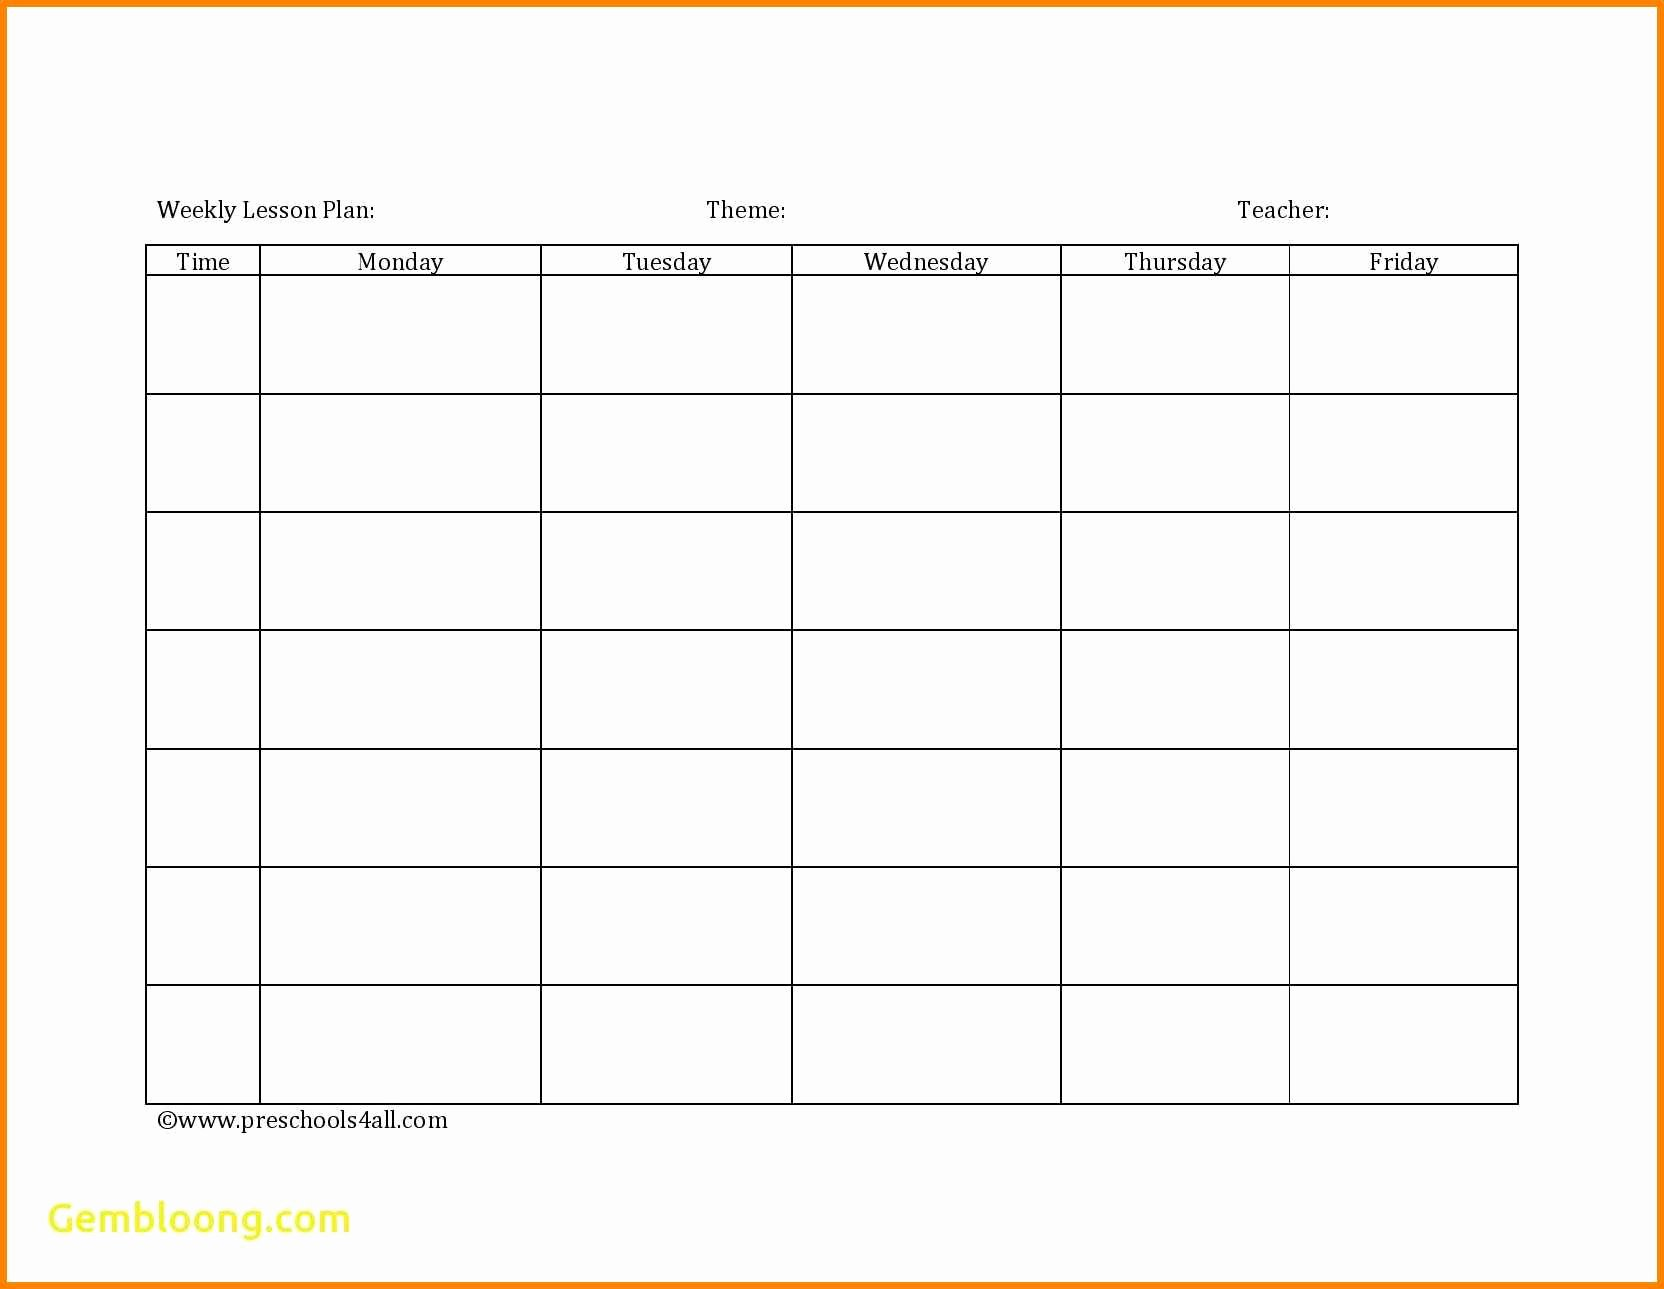 Weekly Lesson Plan Template Pdf Beautiful 7 Editable Weekly Lesson Plan Template